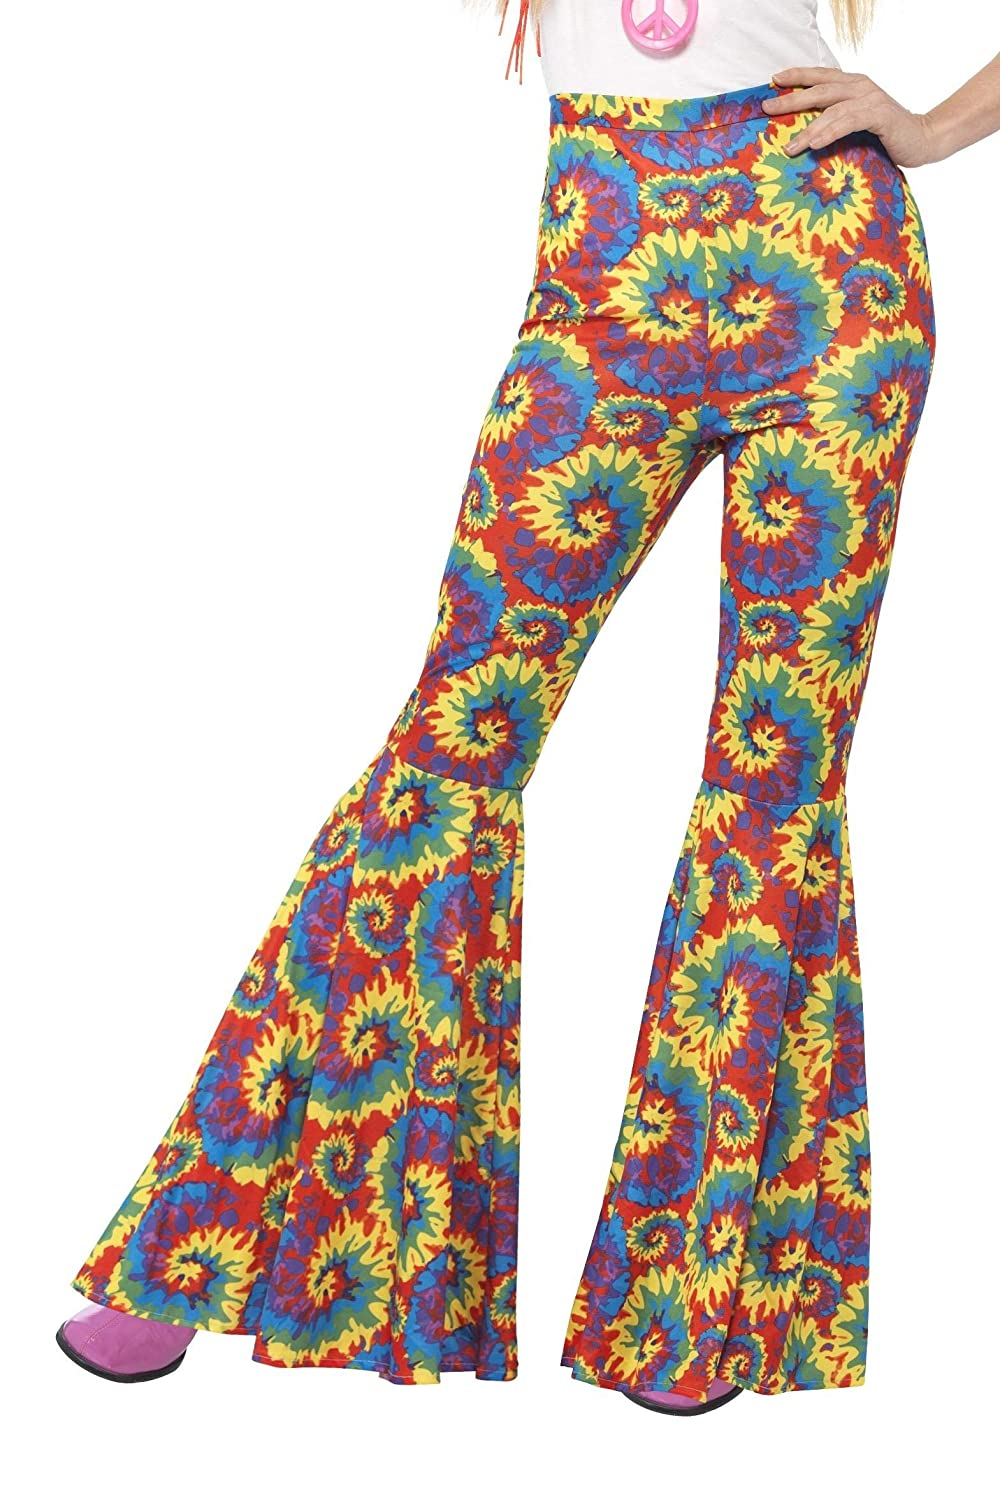 Vintage High Waisted Trousers, Sailor Pants, Jeans Adults Womens 70s Flared Groovy Tie Dye Disco Pants Costume $26.97 AT vintagedancer.com